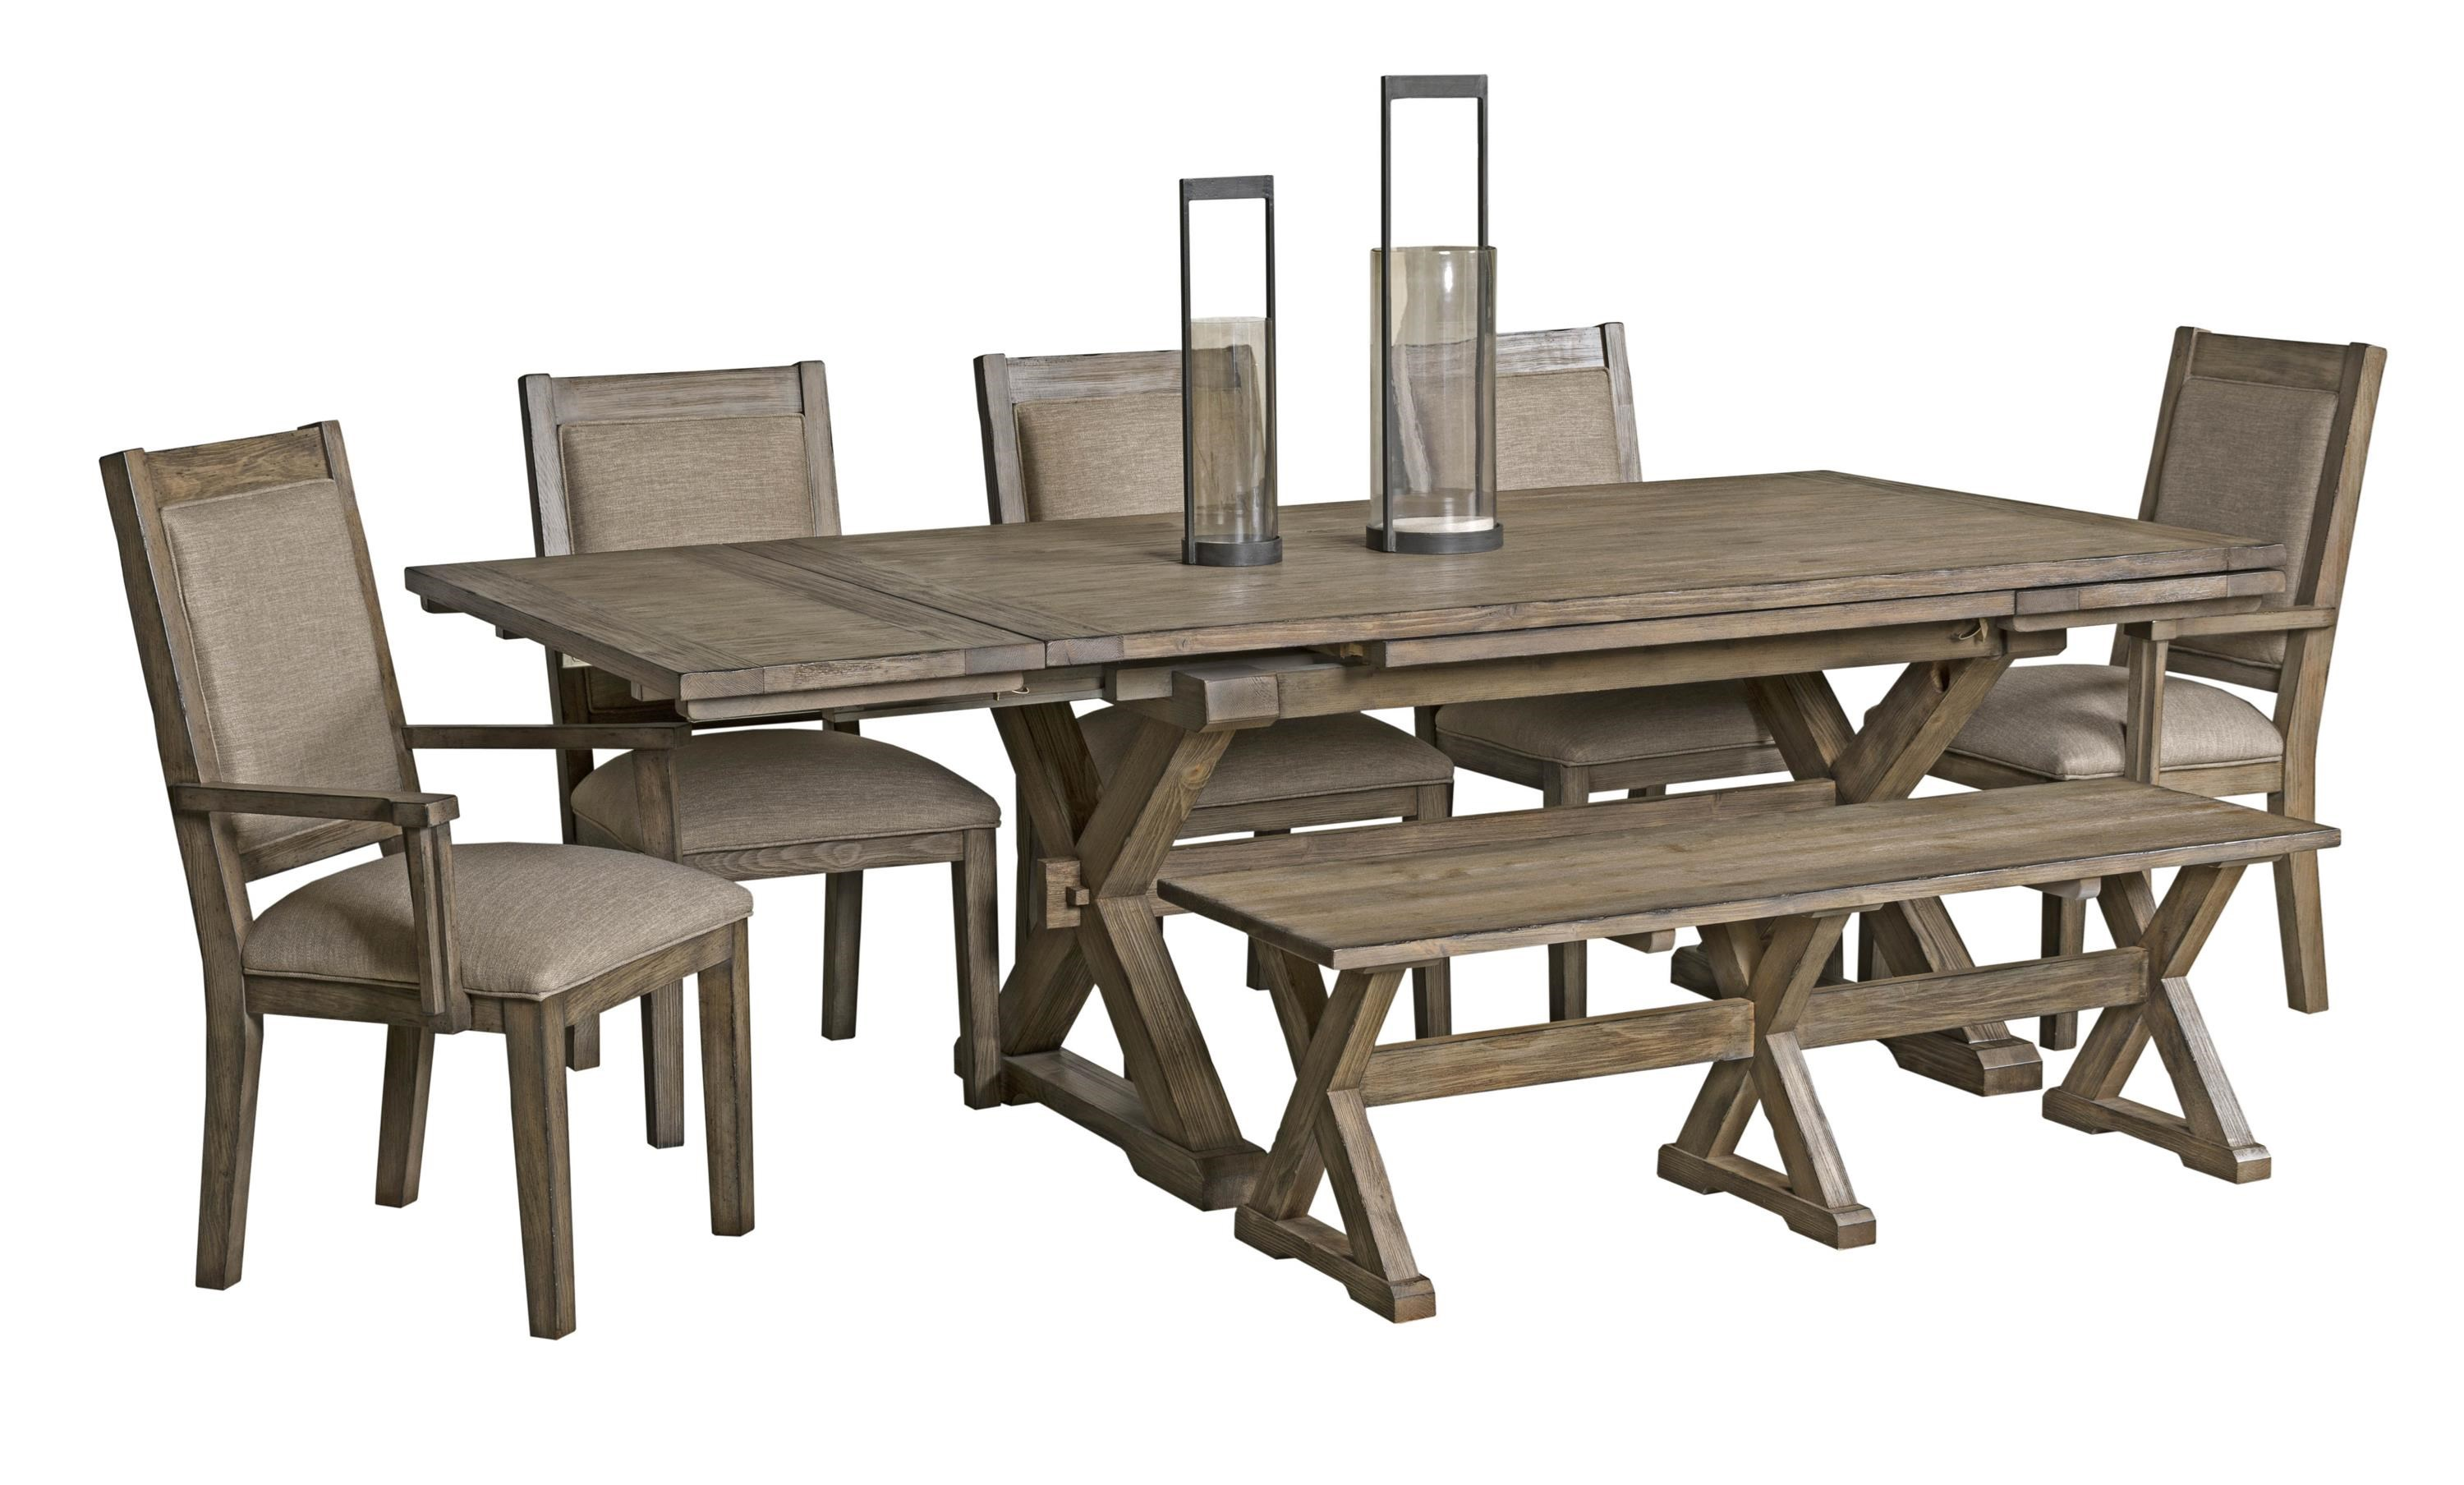 Kincaid Furniture Foundry 5 Piece Table & Chair Set with Leaves - Item Number: 59-056+069+4X063